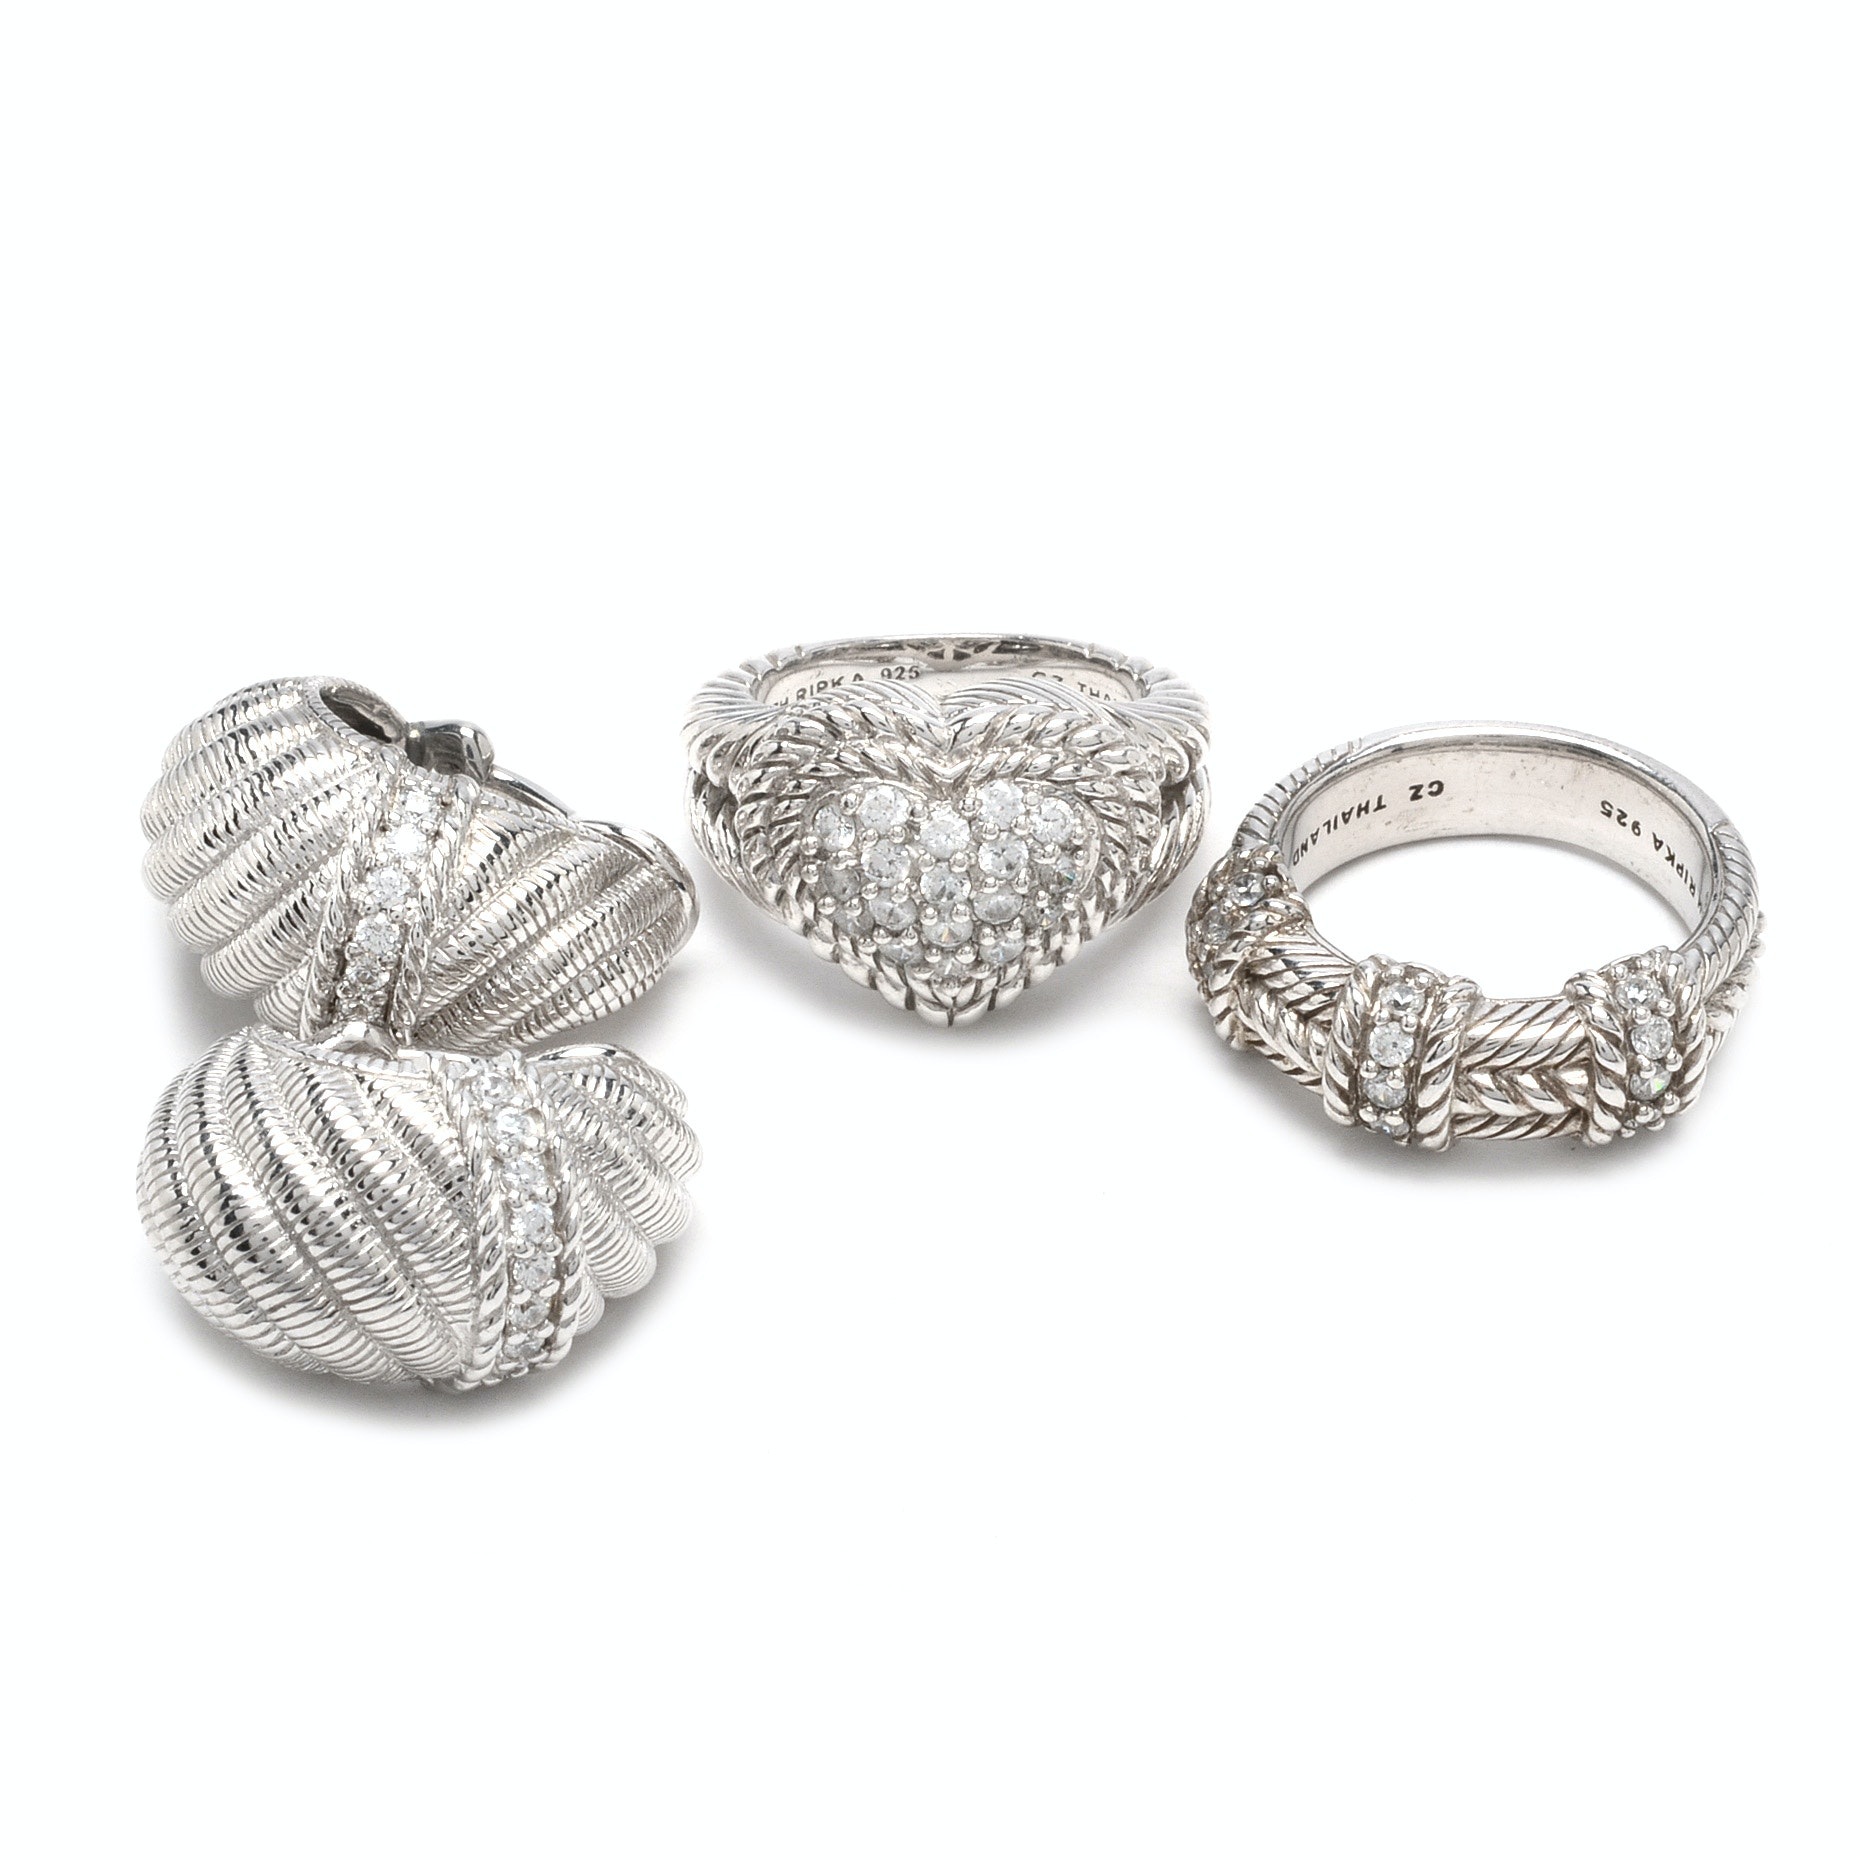 Judith Ripka Sterling Silver and Cubic Zirconia Jewelry